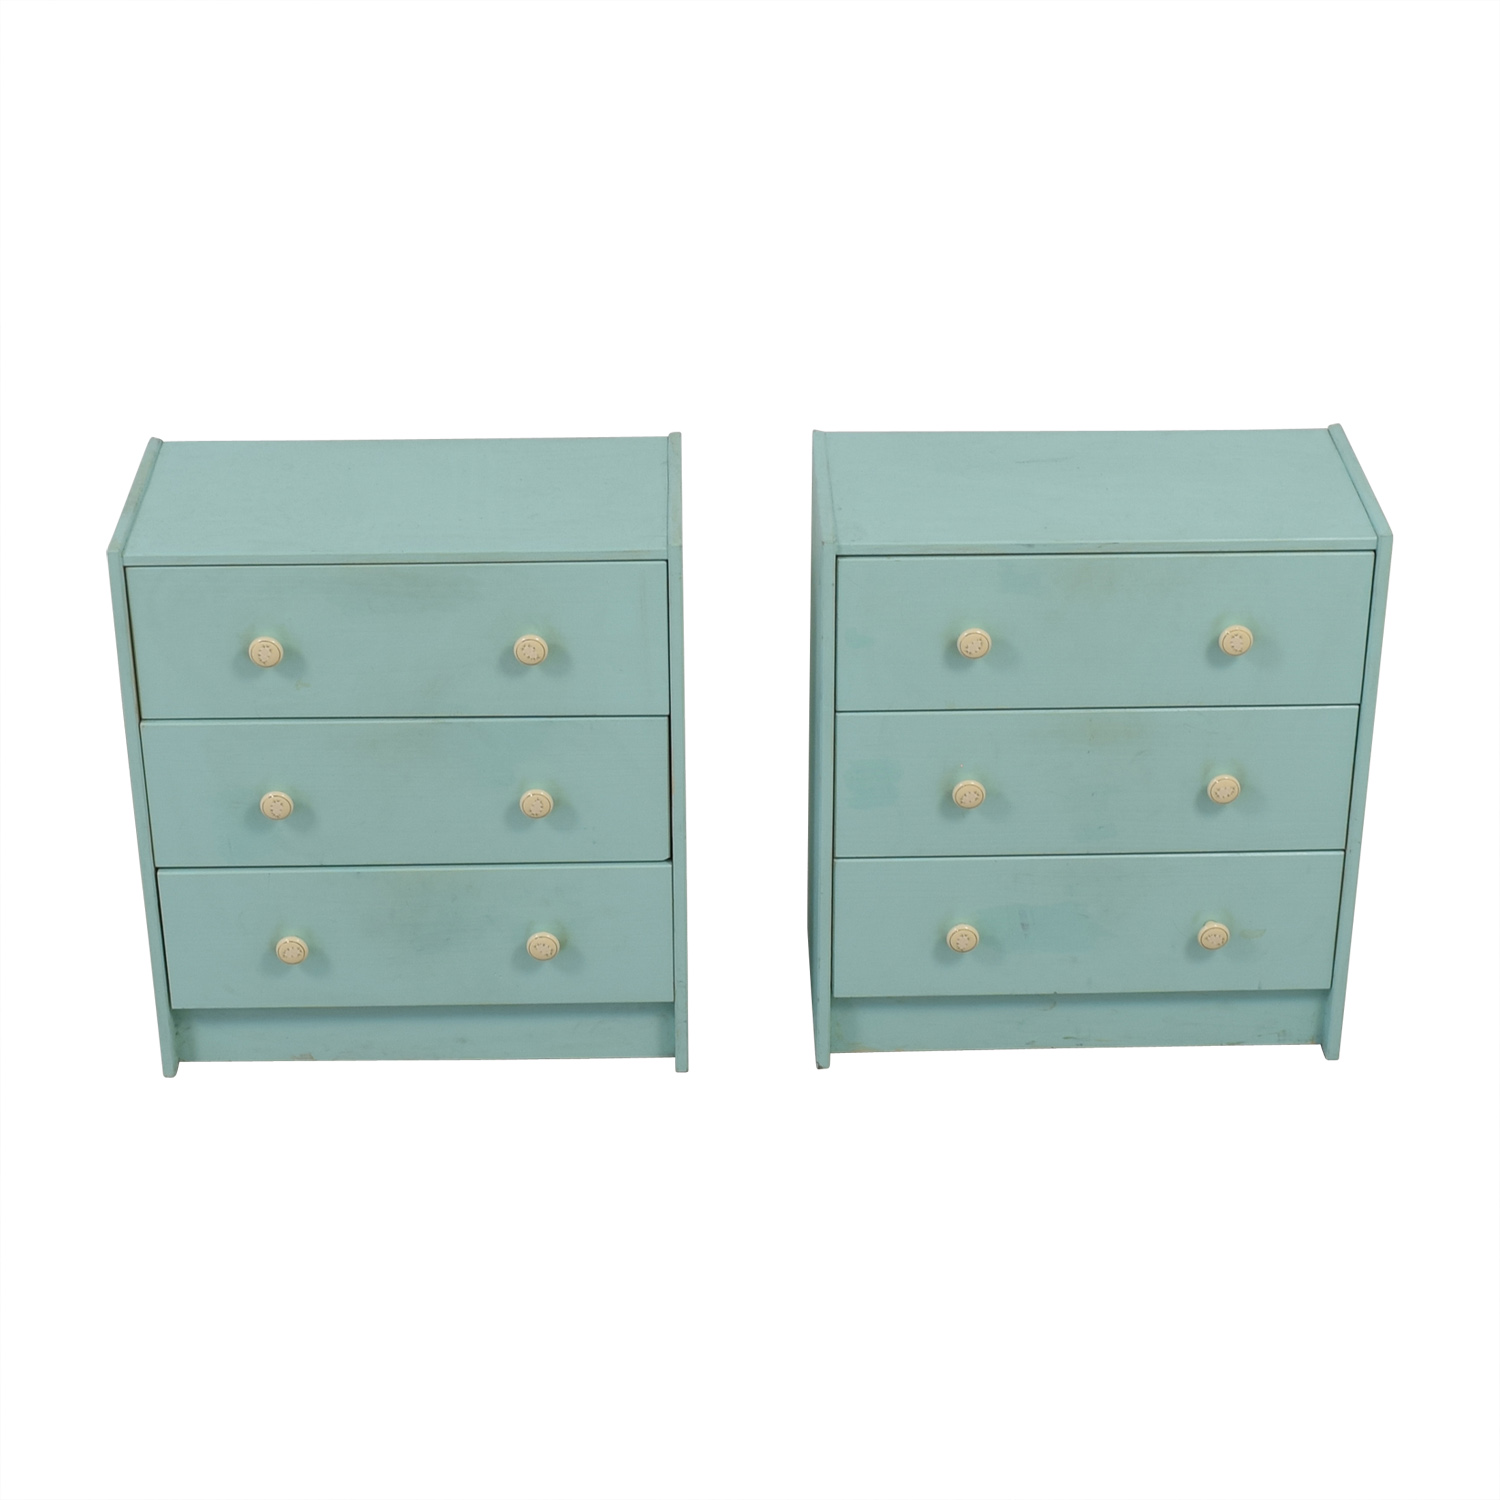 Turquoise Three-Drawer Dressers Dressers